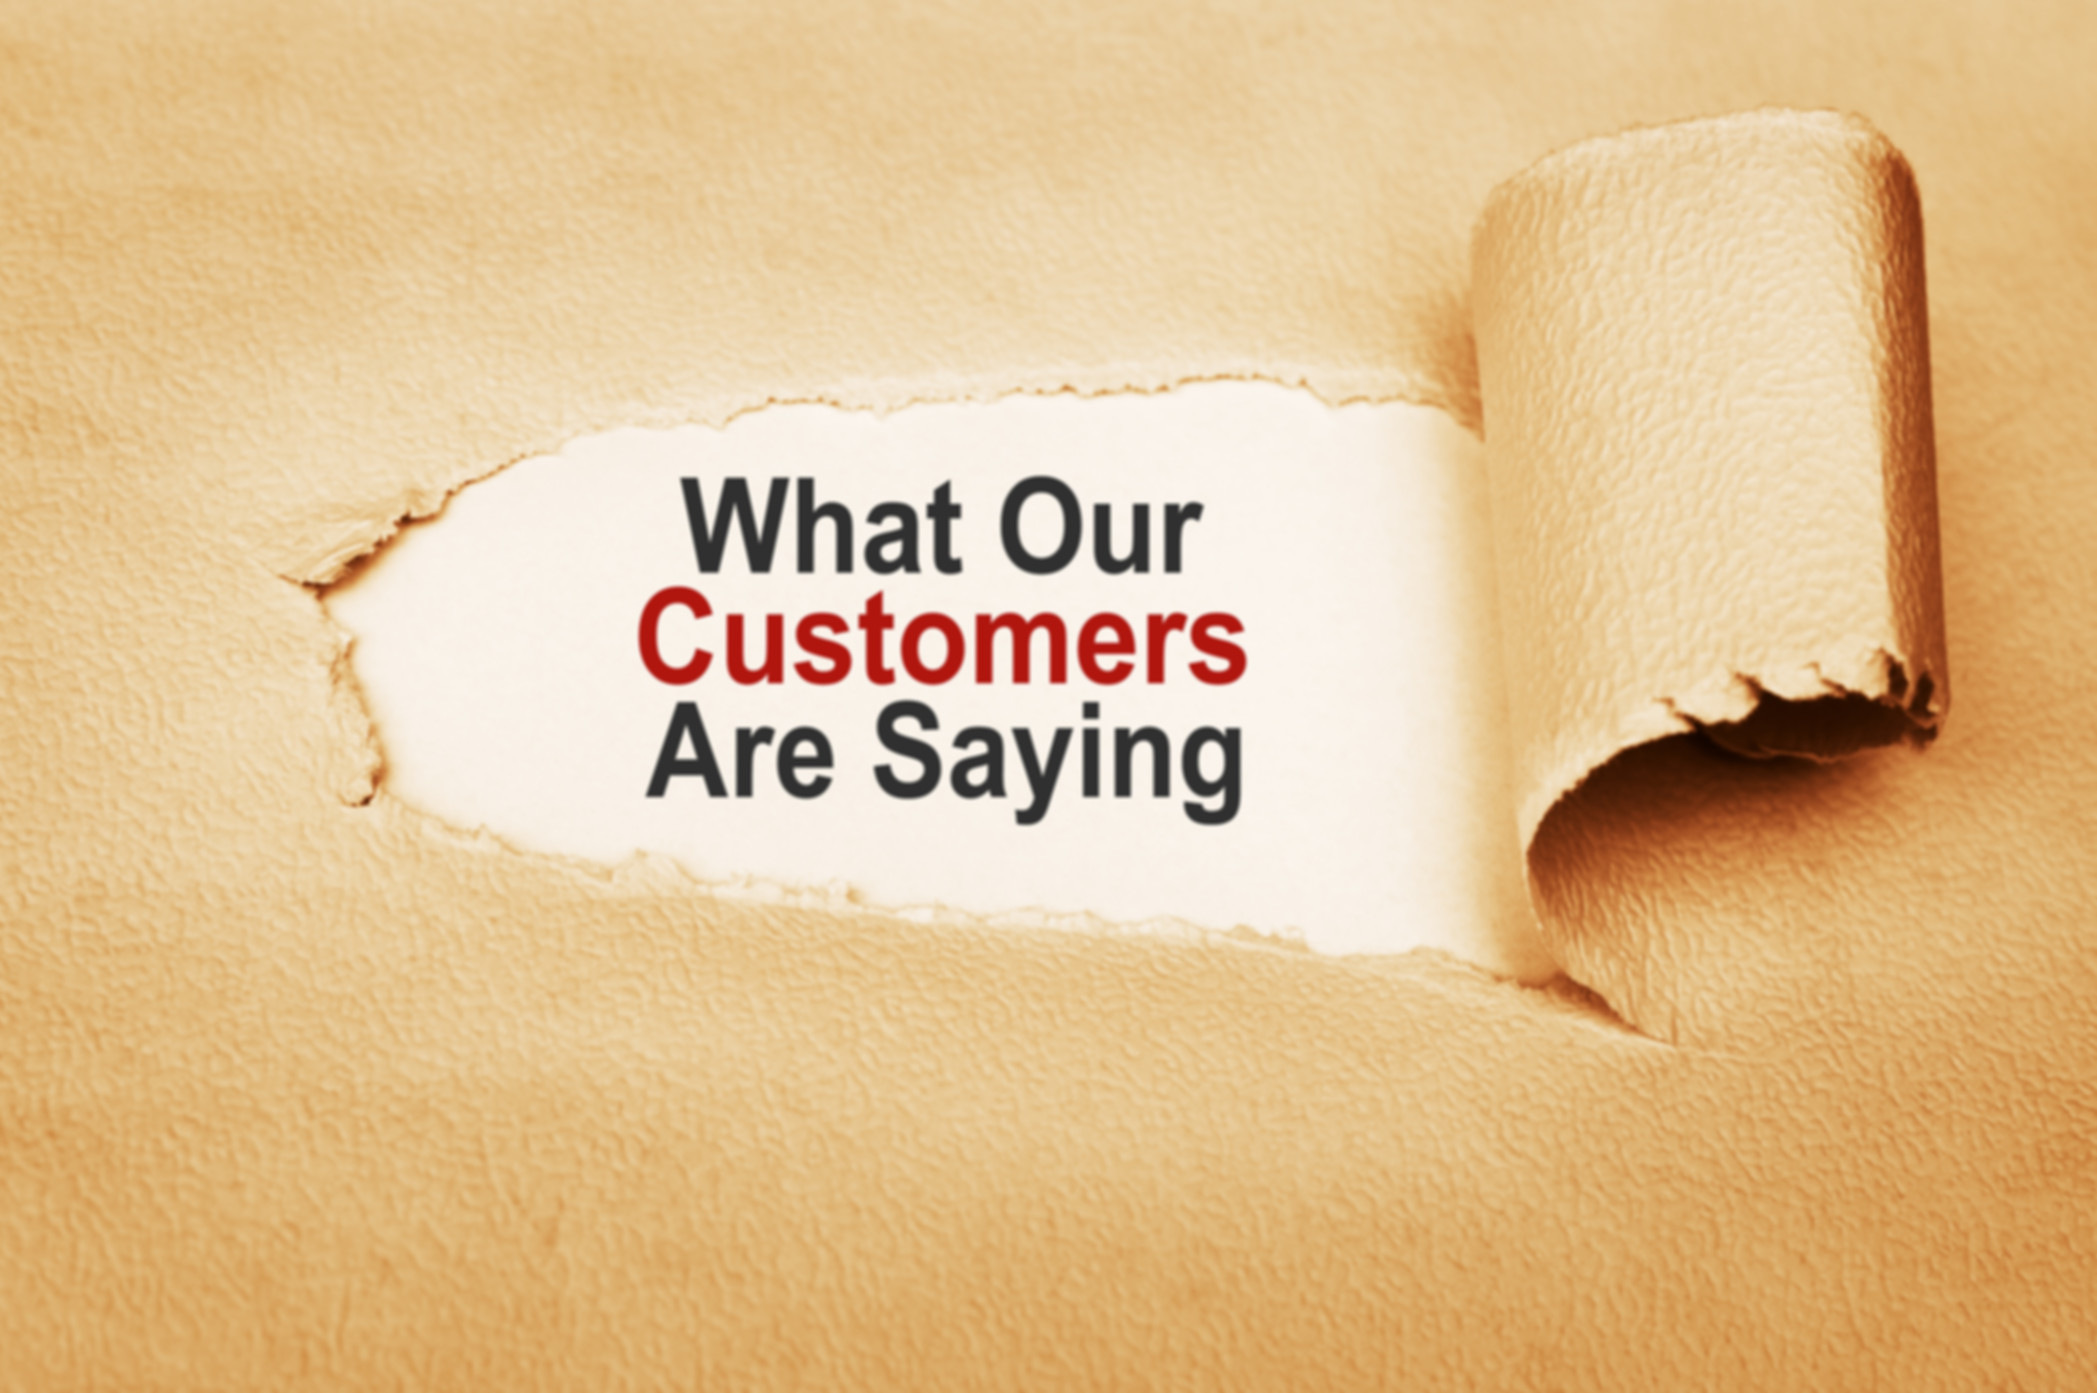 What Our Customers Are Saying.jpg